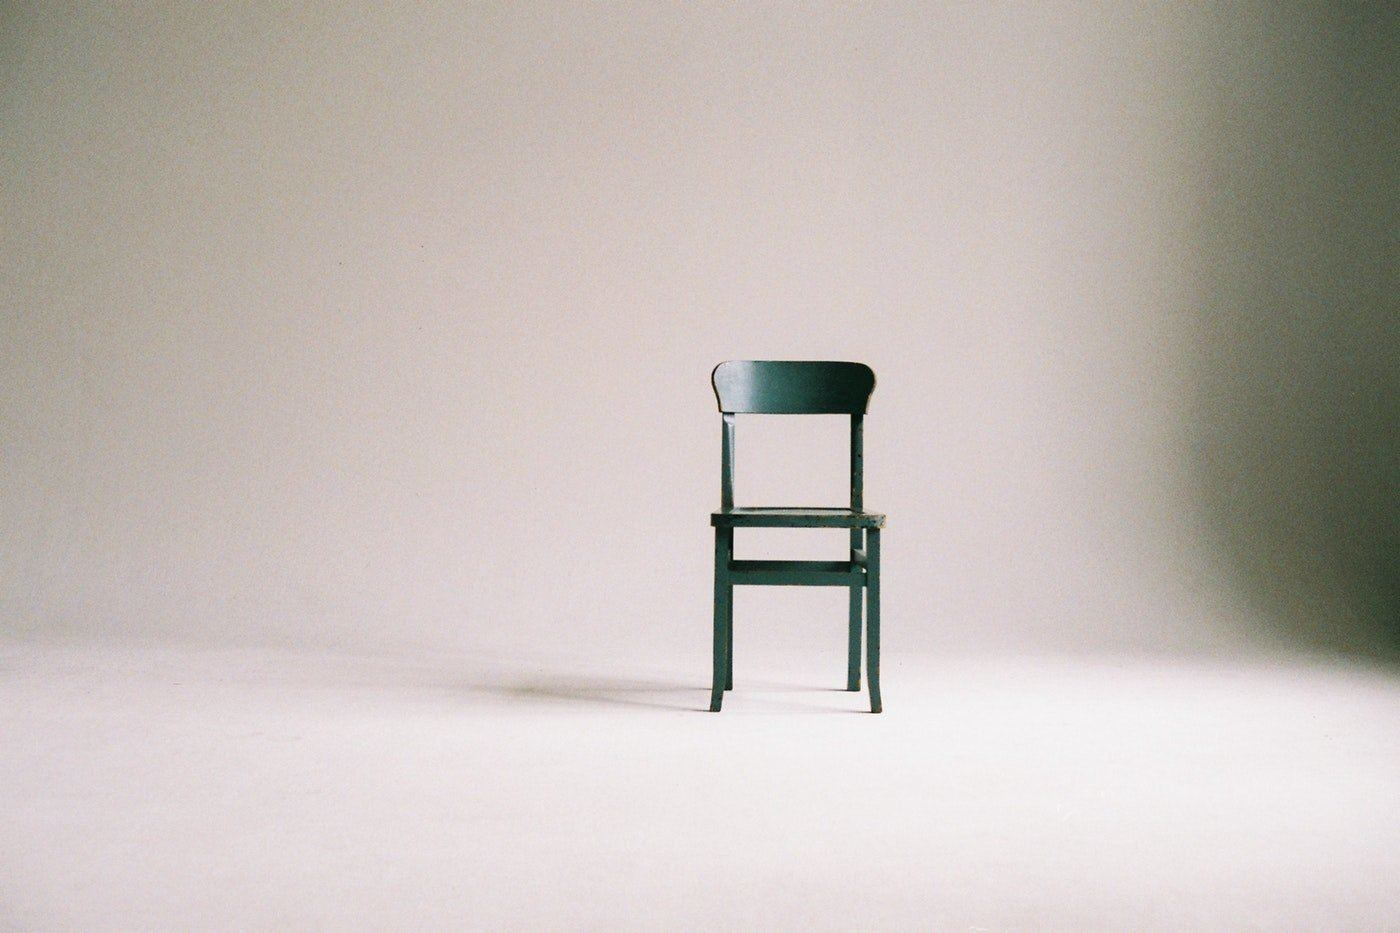 green wooden chair against white background - how our sedentary lifestyles are harming us